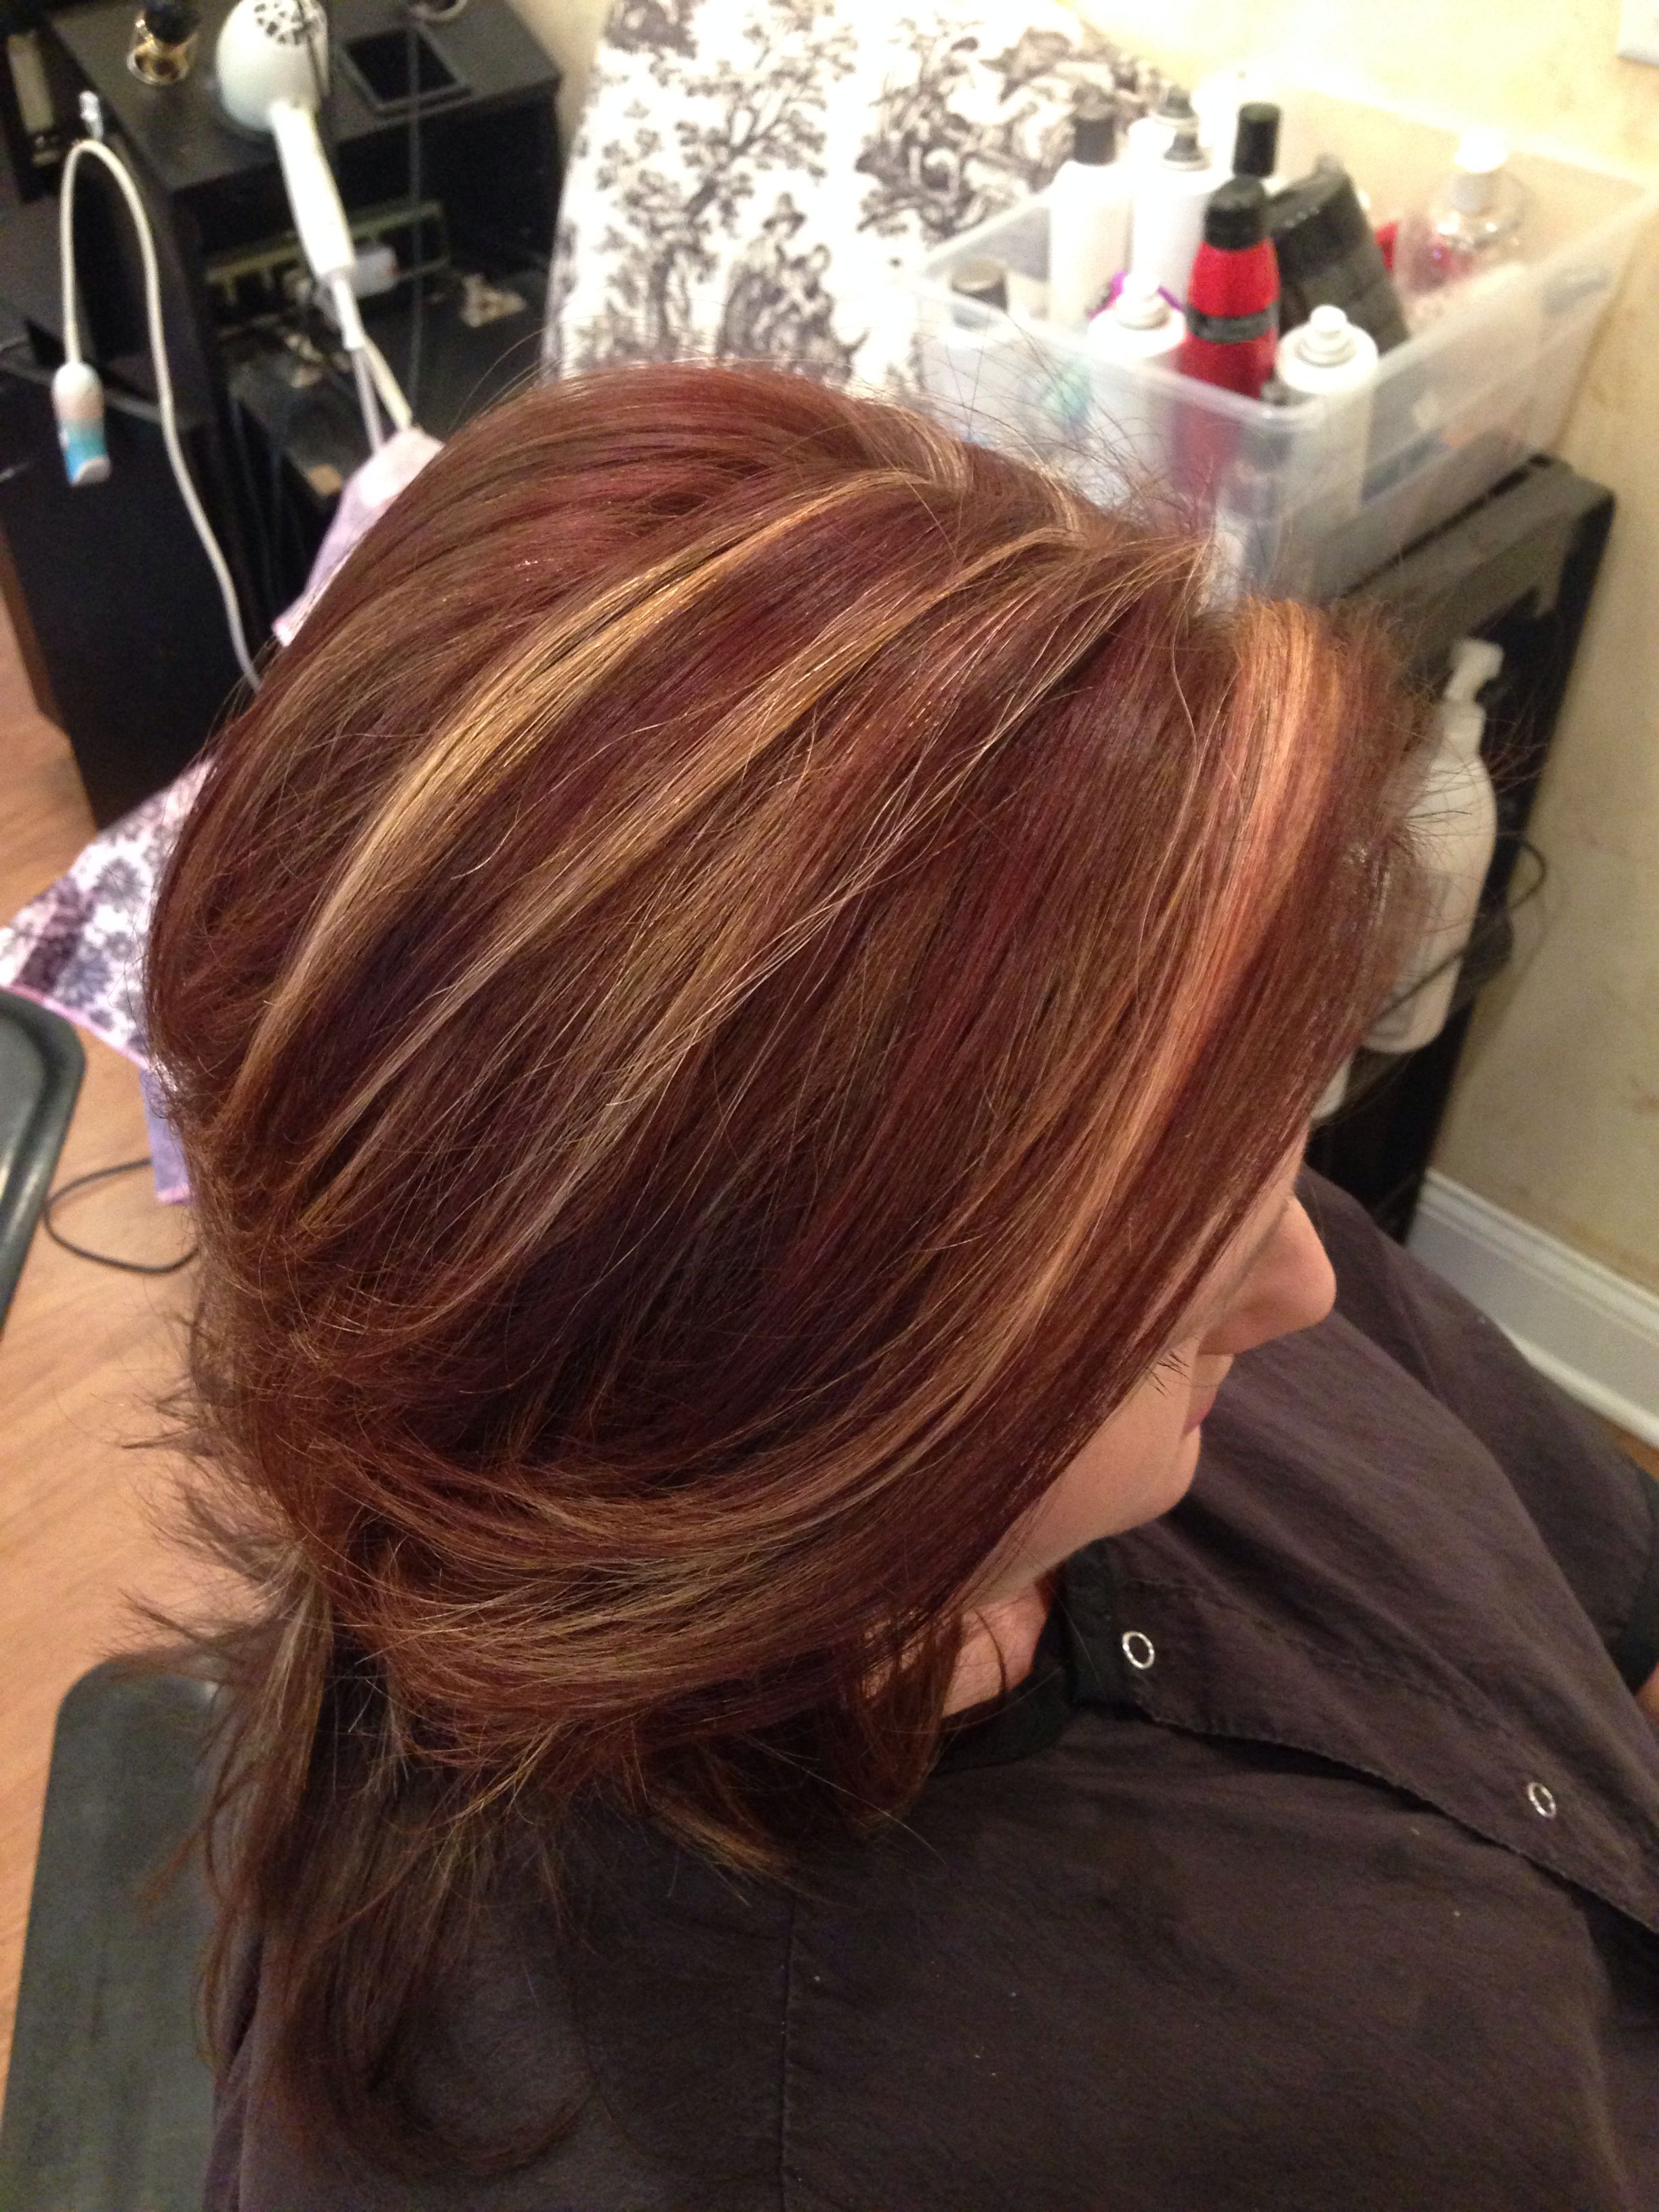 Warm blonde chunks with racing red and chocolate lowlights